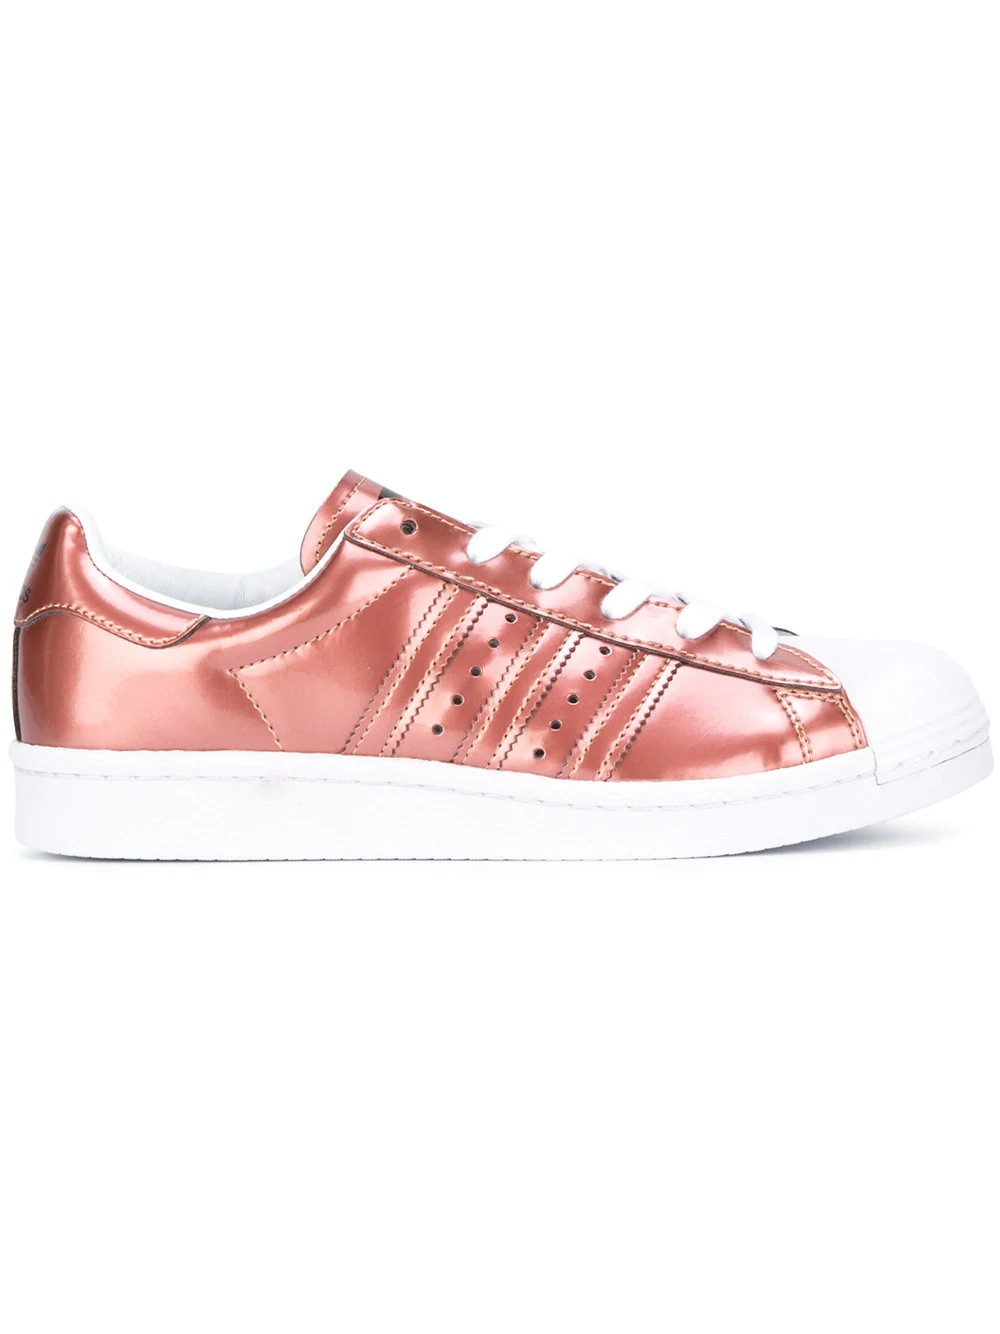 Adidas Originals Superstar Femme Sneaker Marron BB2270